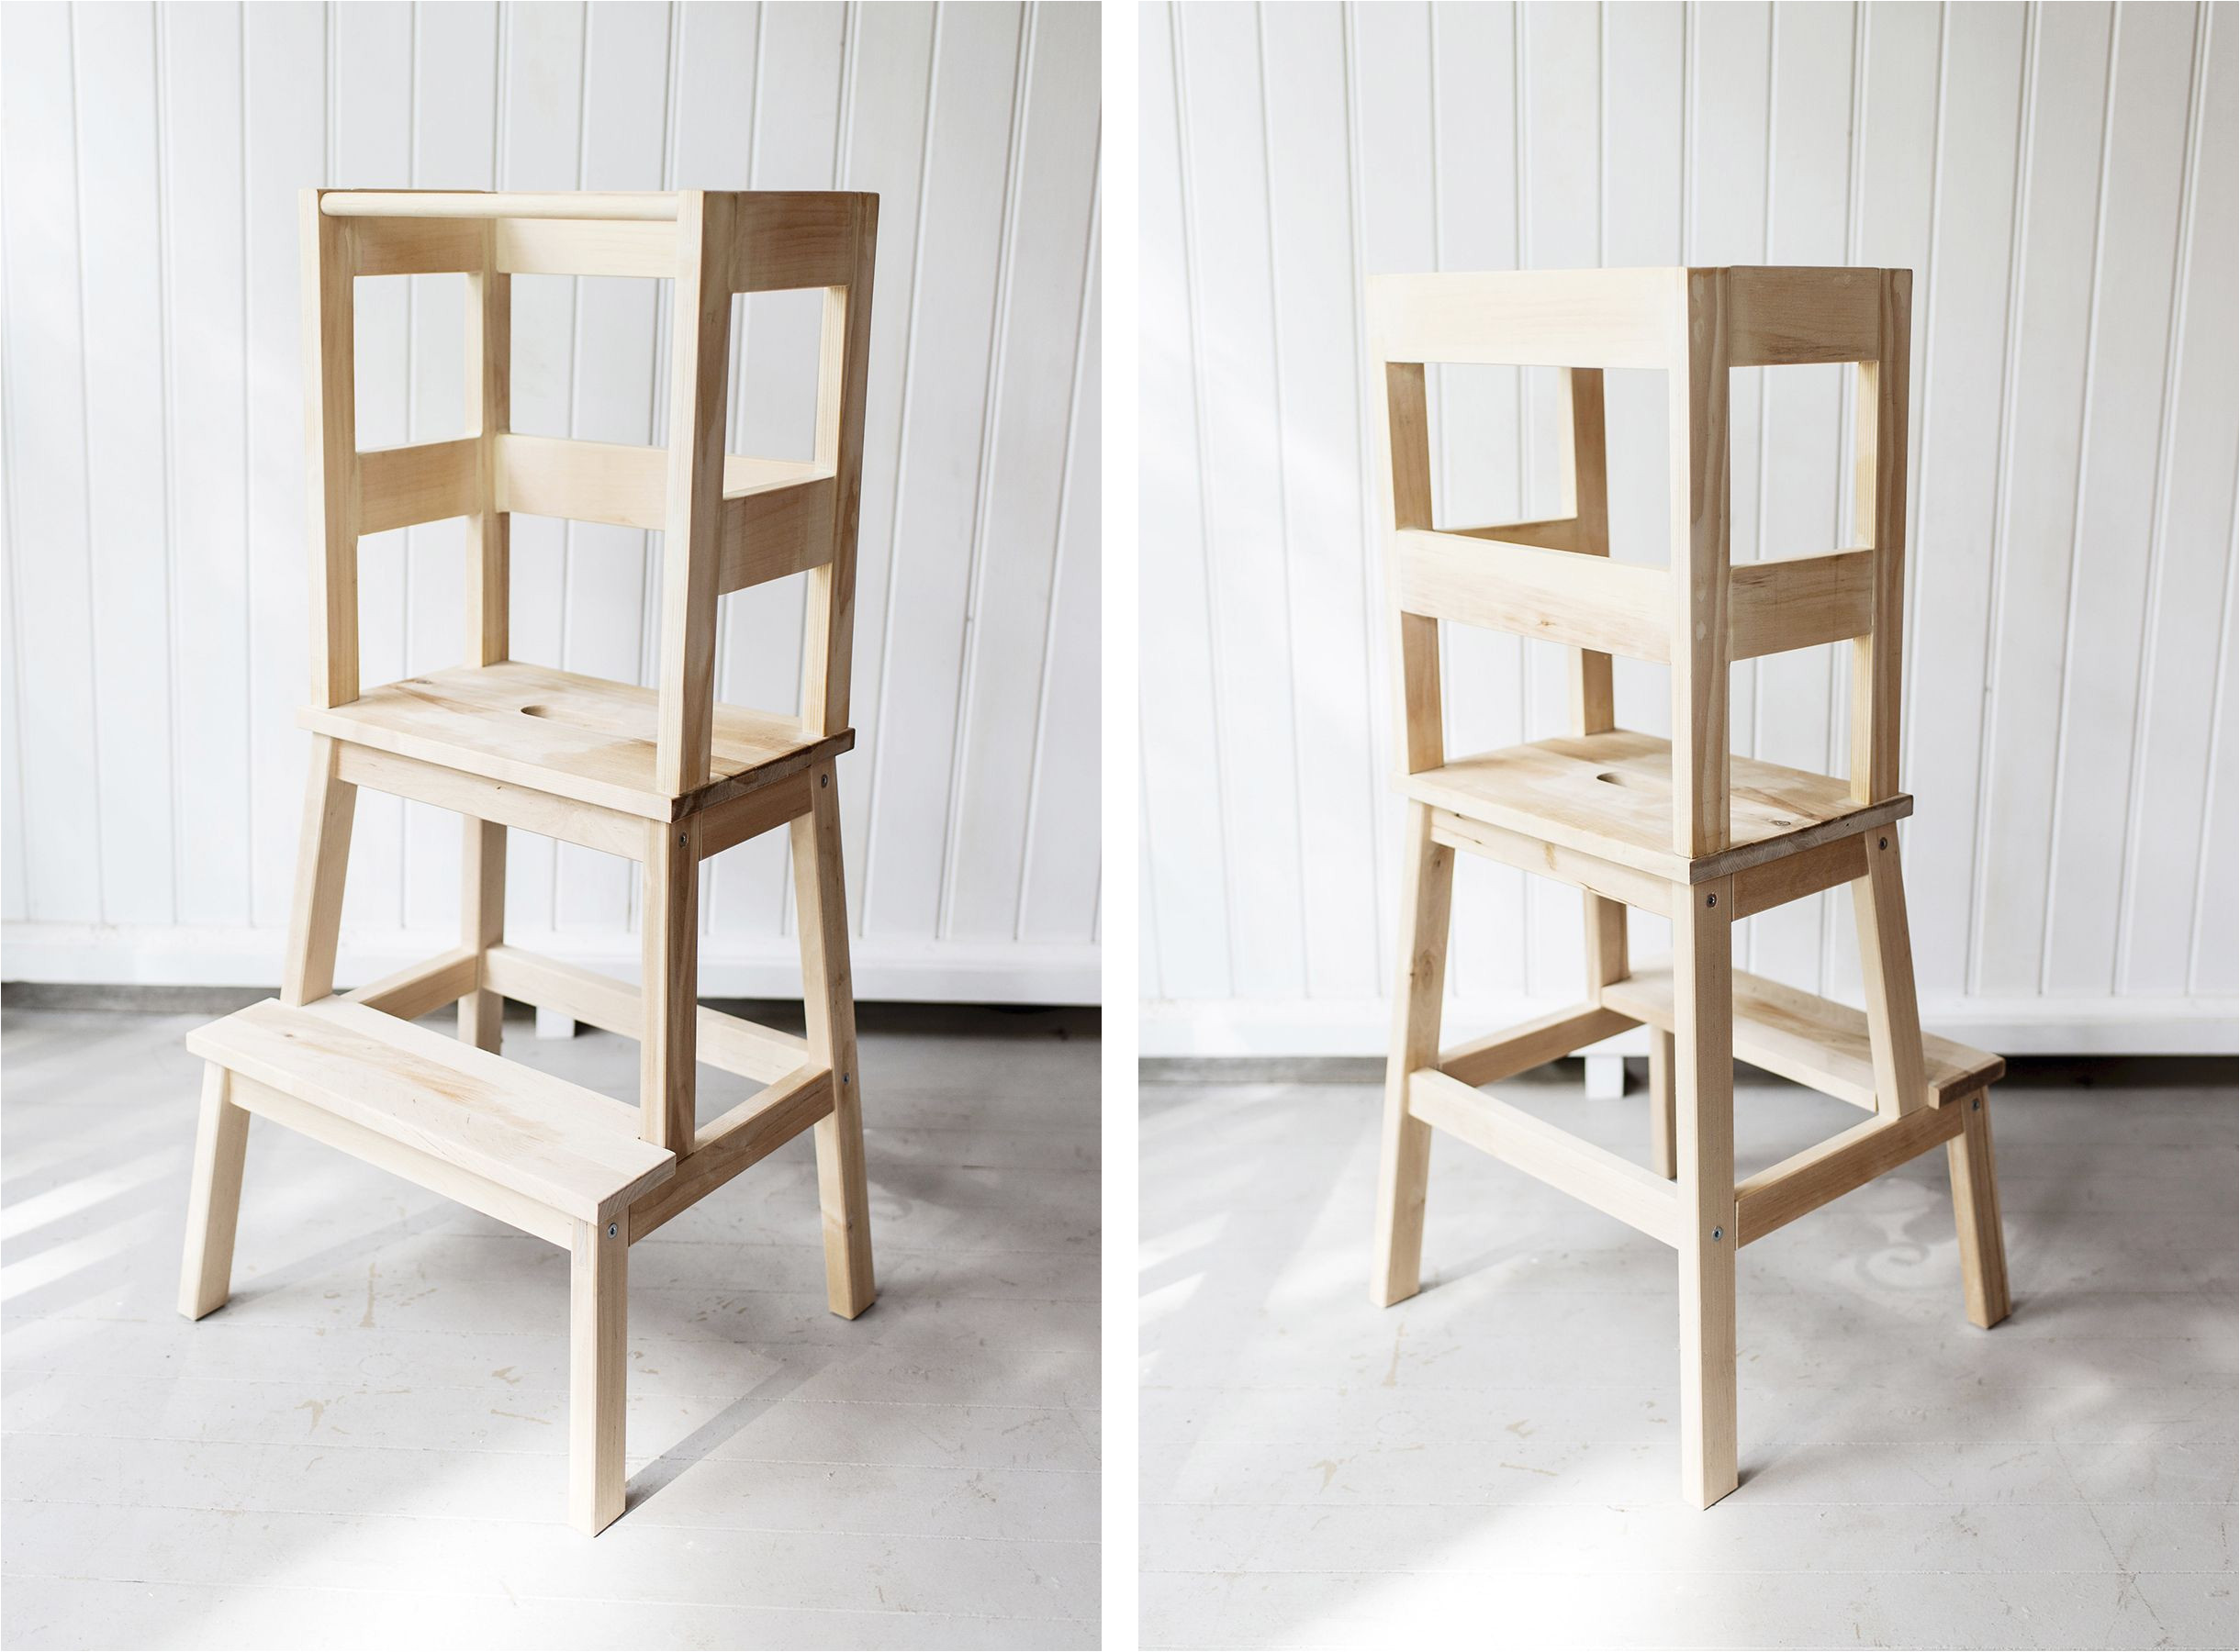 beauteous kitchen helper stool plans on 21 of the best farmhouse ikea hacks toddler gifts